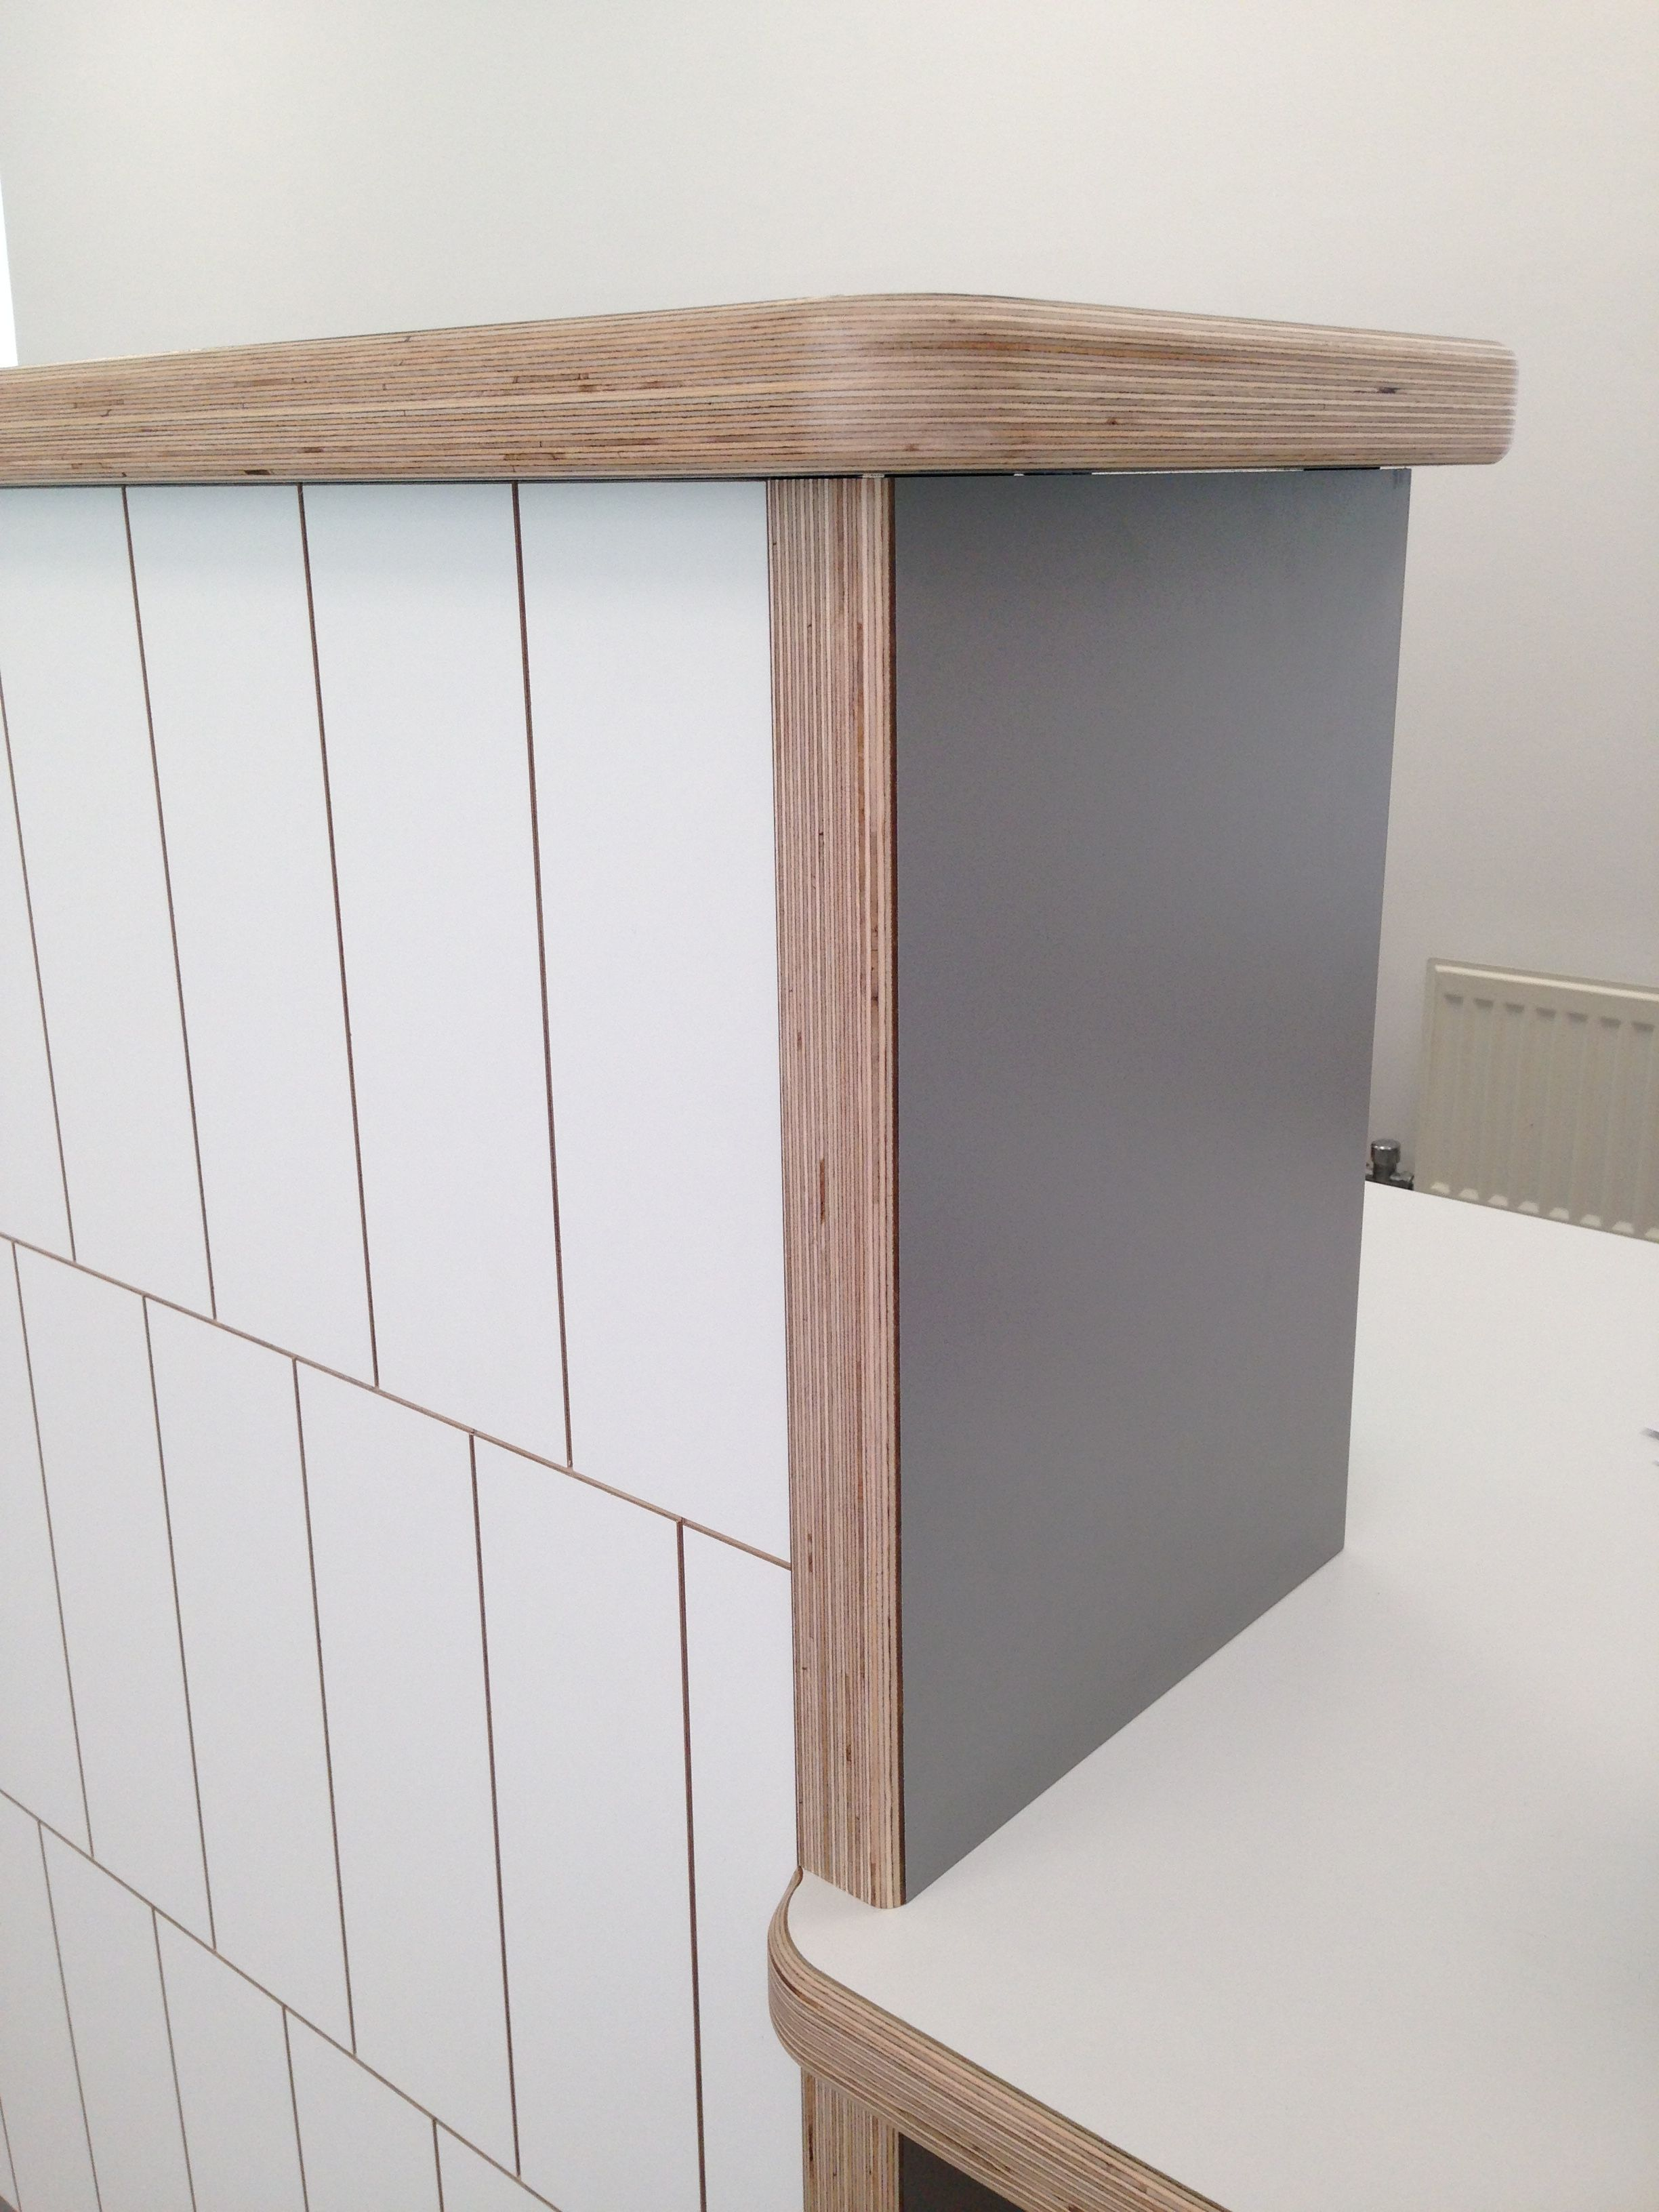 Melamine Birch Plywood Laminated Birch Plywood Plywood Pinterest Plywood Birch And